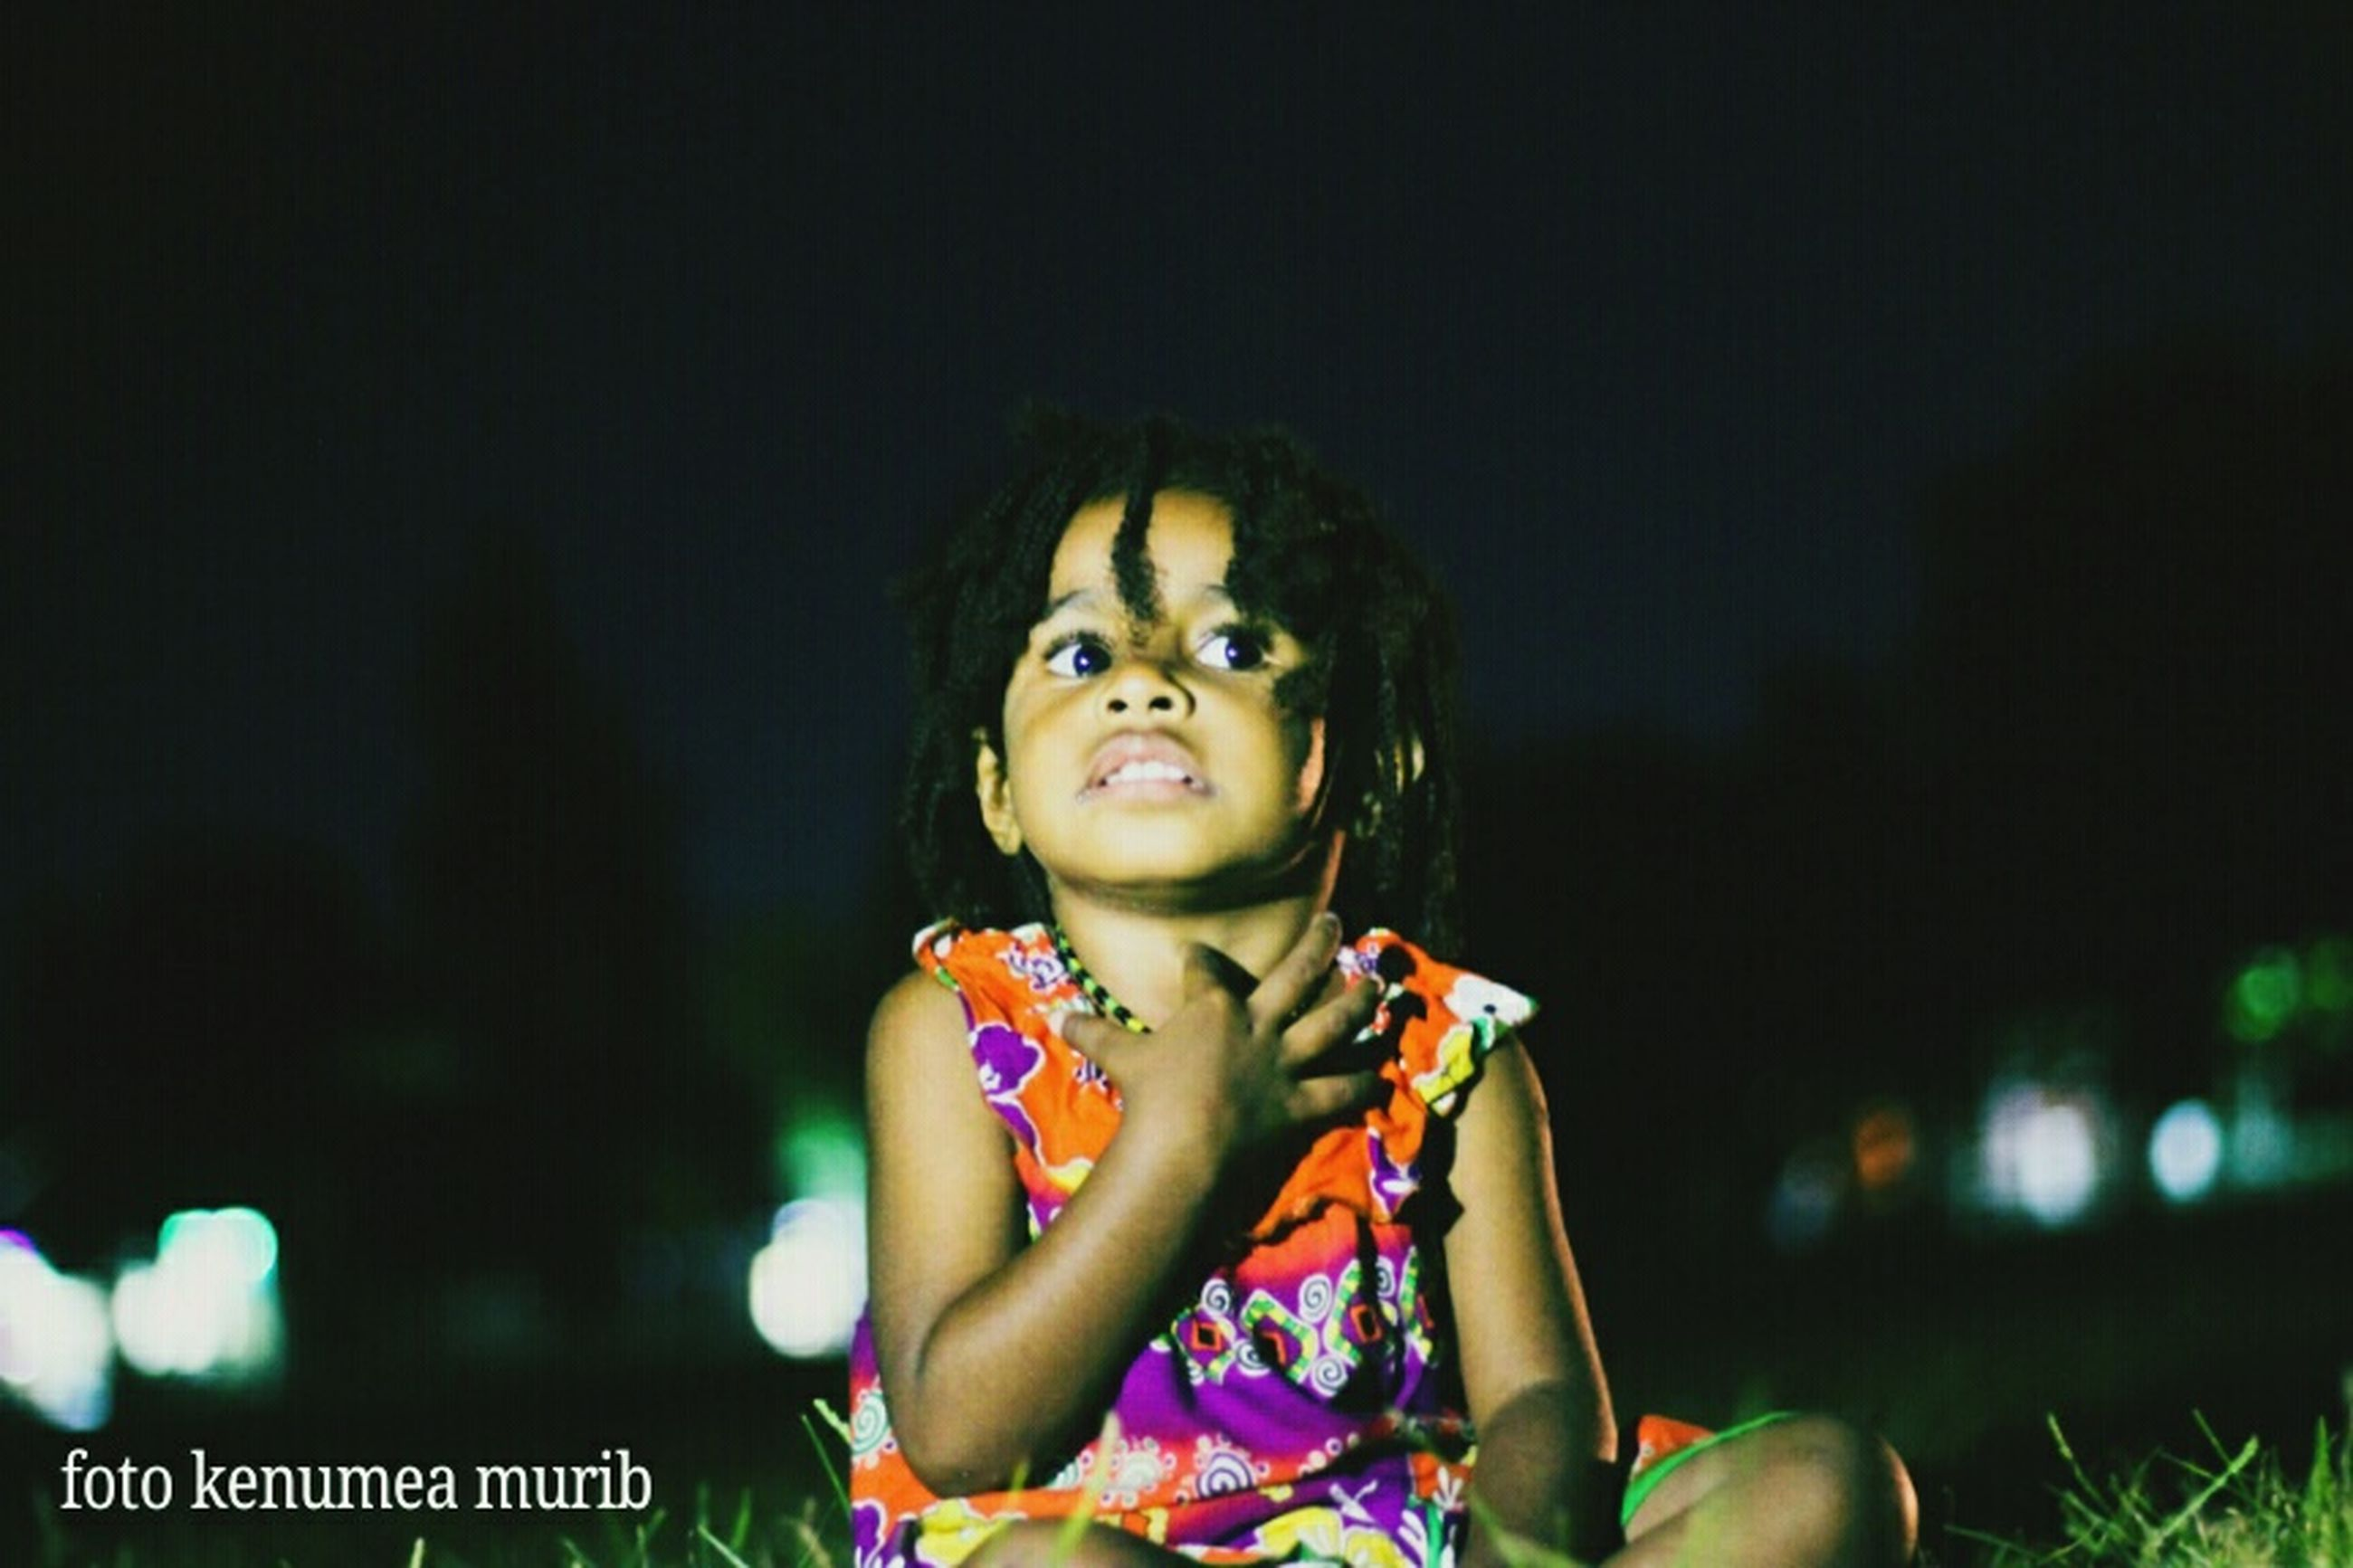 child, childhood, one person, front view, portrait, girls, looking at camera, night, women, females, offspring, innocence, holding, focus on foreground, waist up, real people, leisure activity, standing, dark, hairstyle